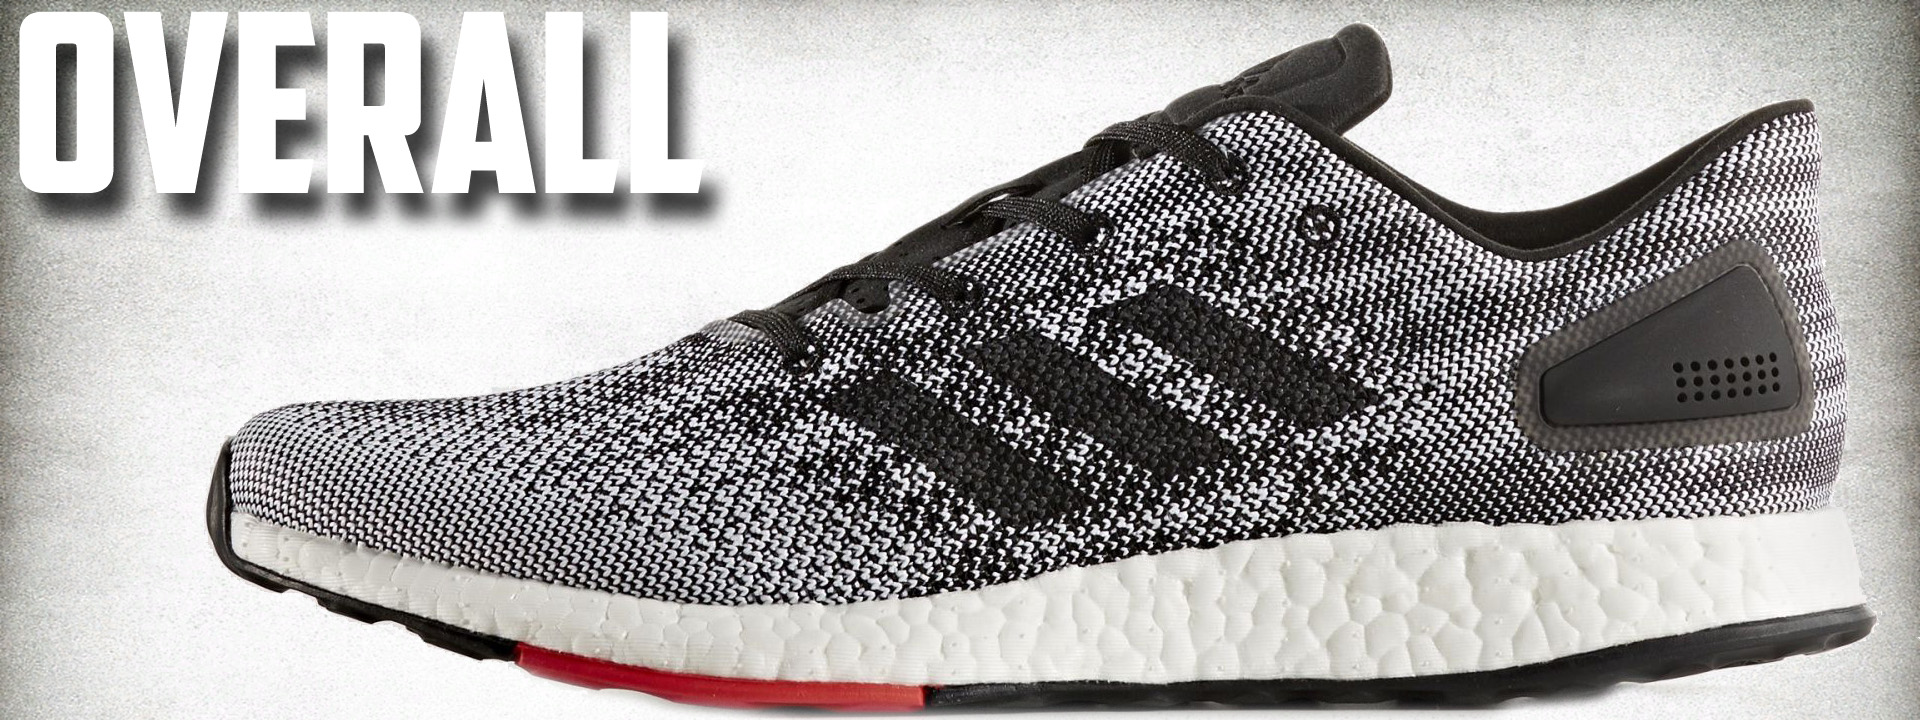 Adidas Pure Boost Running Shoe Review: More Than A Pretty